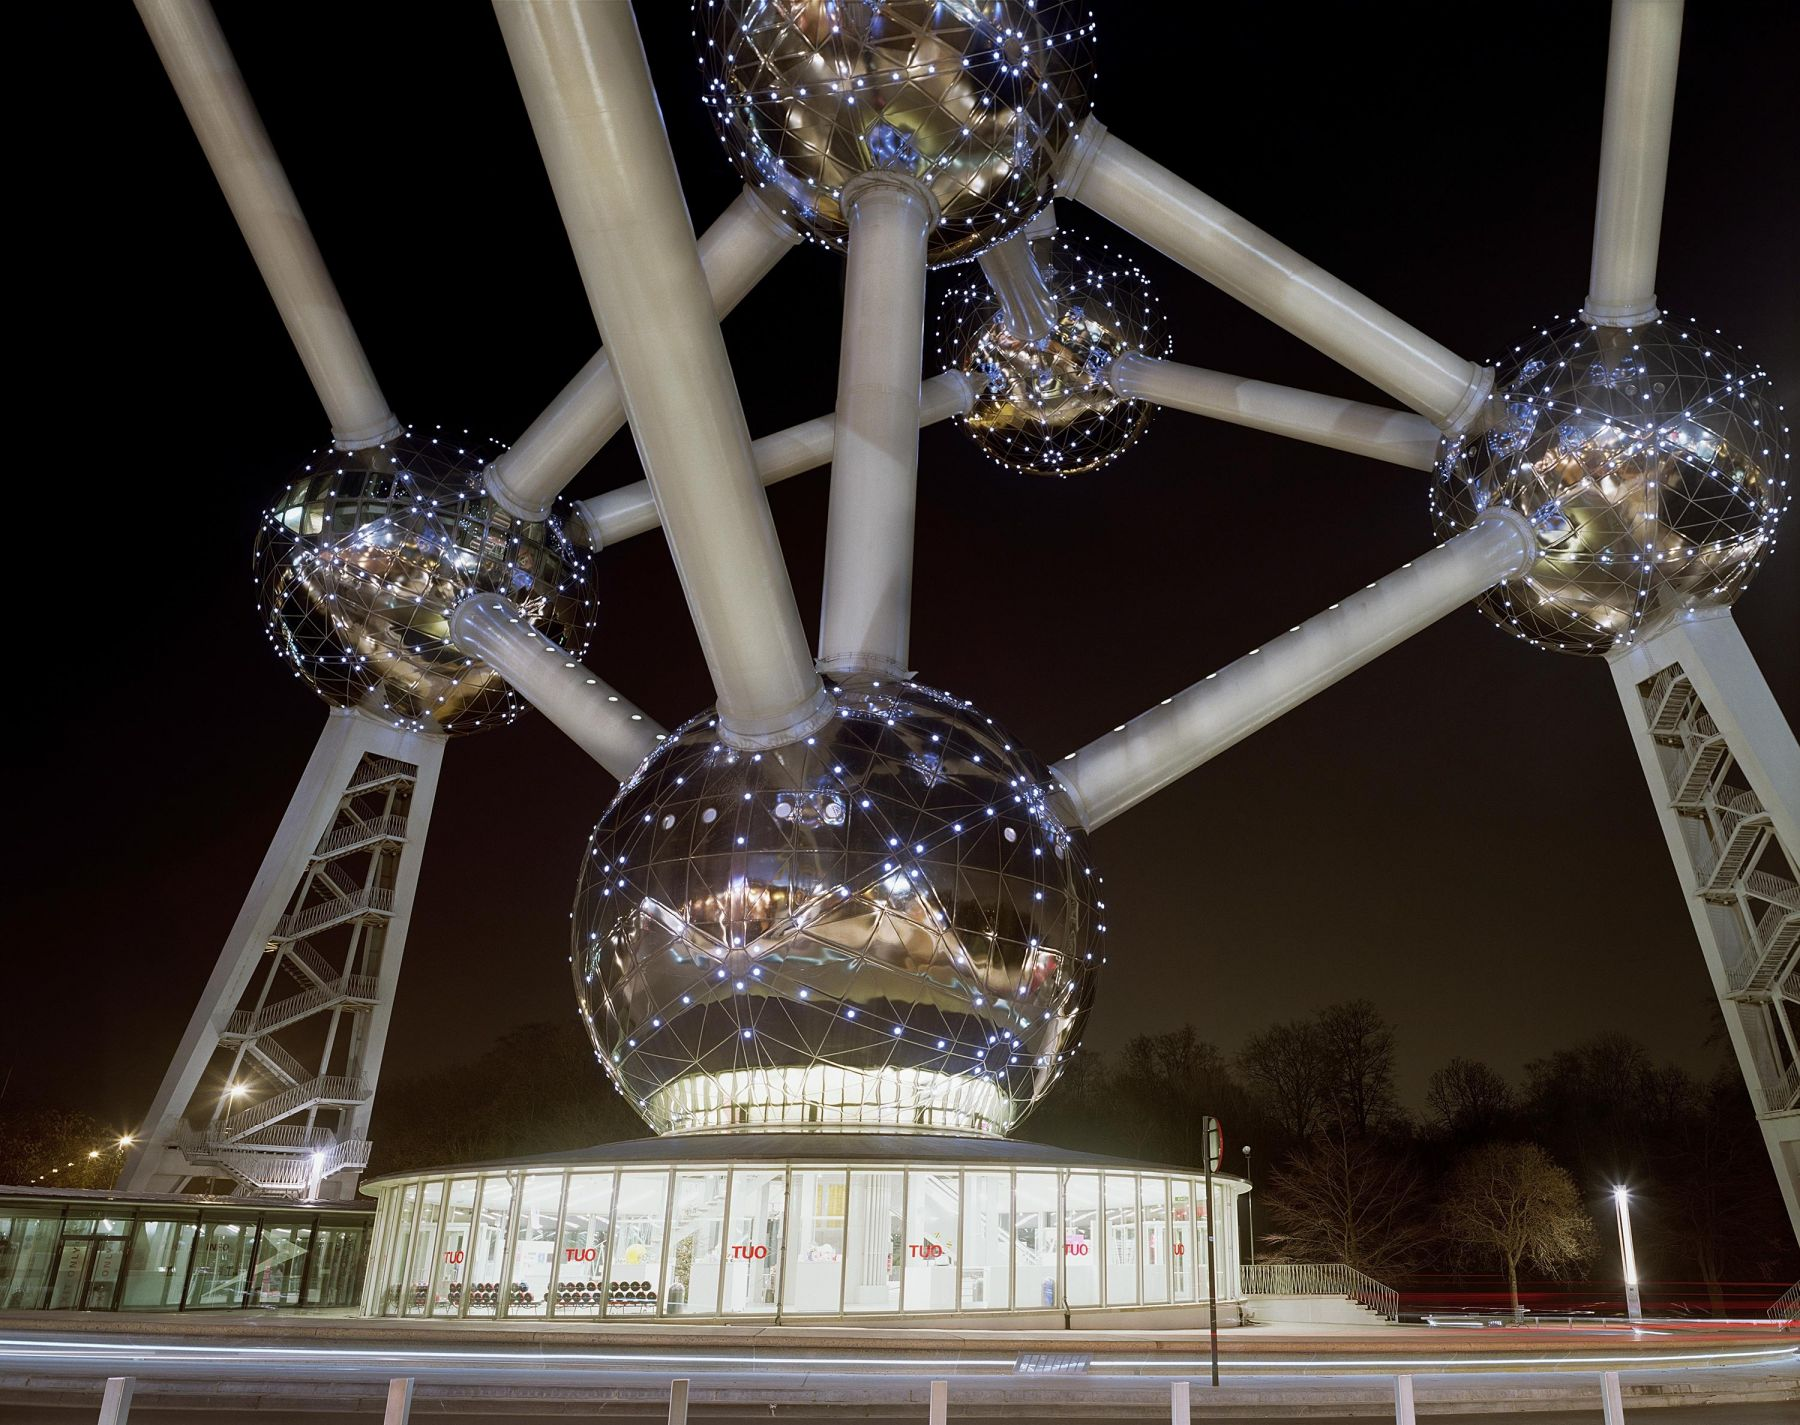 Jade Doskow  Brussel's 1958 World Fair, A World View: A New Humanism, Atomium at Night, 2008  Digital Chromogenic Print  40h x 50w in, Photographs, Fine Art, Contemporary Art, Asheville